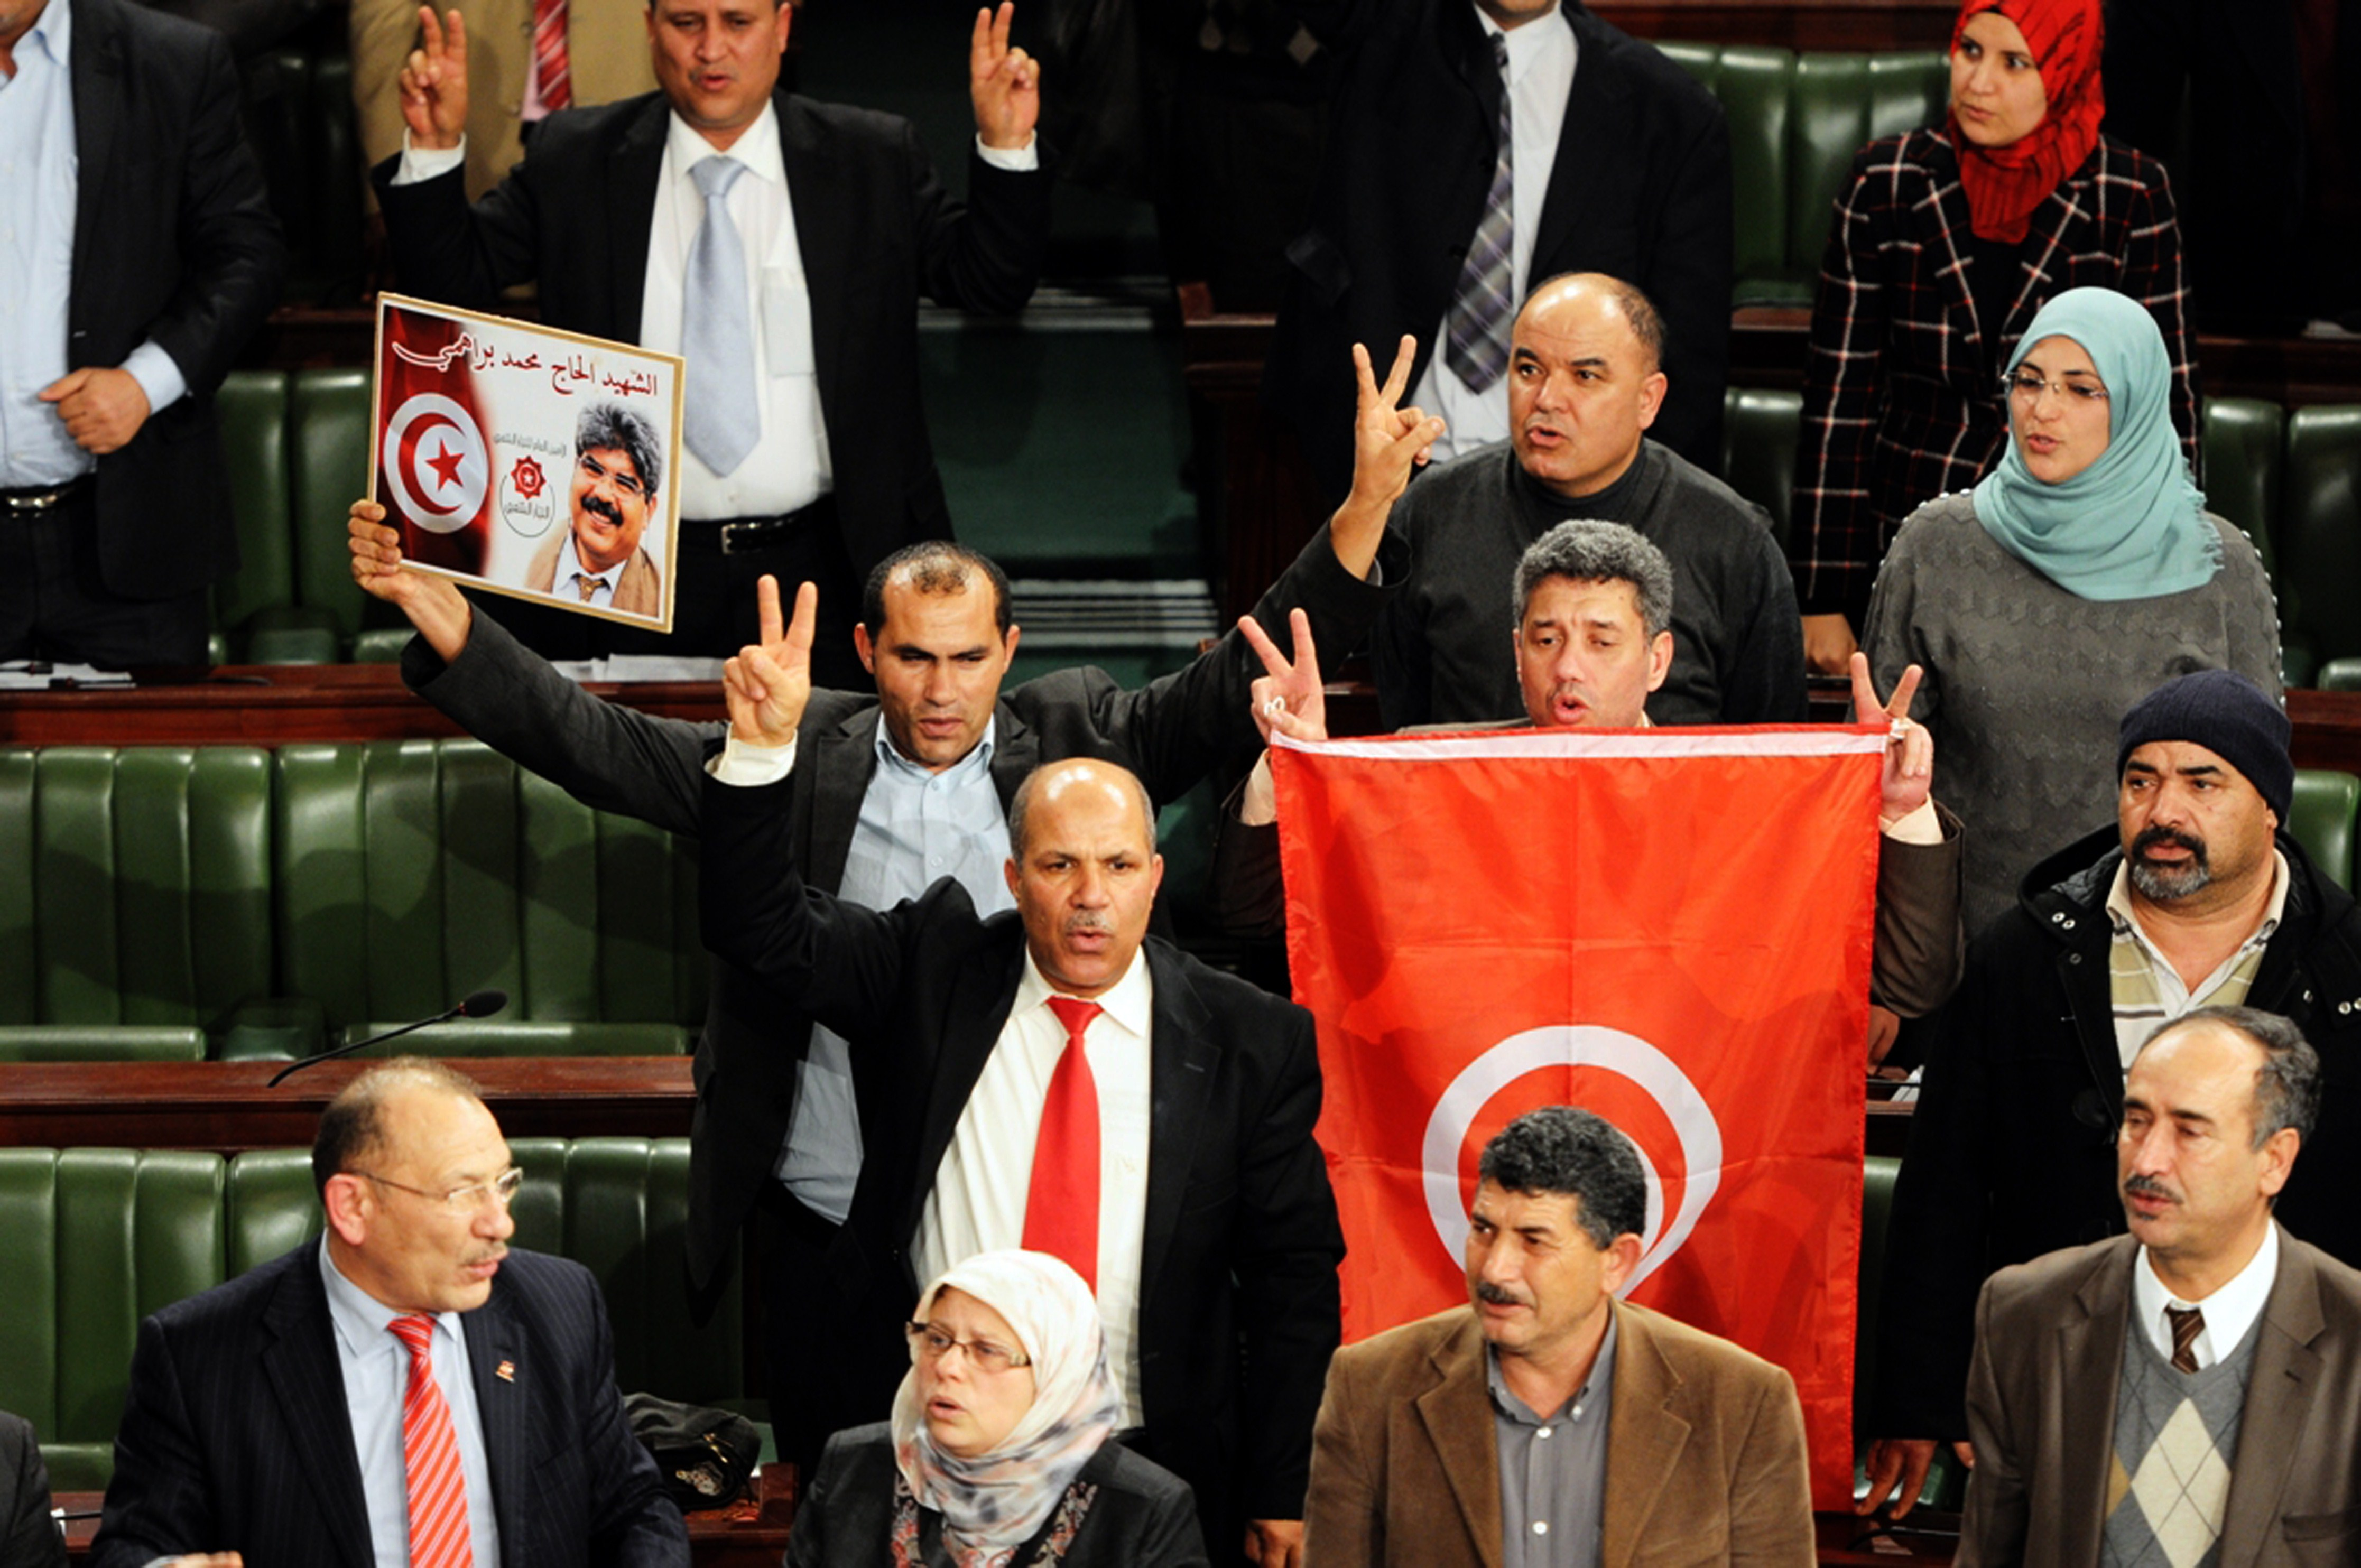 Members of the Tunisian National Constituent Assembly (NCA) jubilate after the adoption of a new constitution on January 26, 2014, in Tunis. Tunisia's constituent assembly late on Sunday adopted a new constitution, more than three years after the revolution which began the Arab Spring.  The assembly approved the constitution by an overwhelming majority, with 200 votes in favour, 12 against and four abstentions a live television broadcast showed.   (AFP PHOTO / STR)